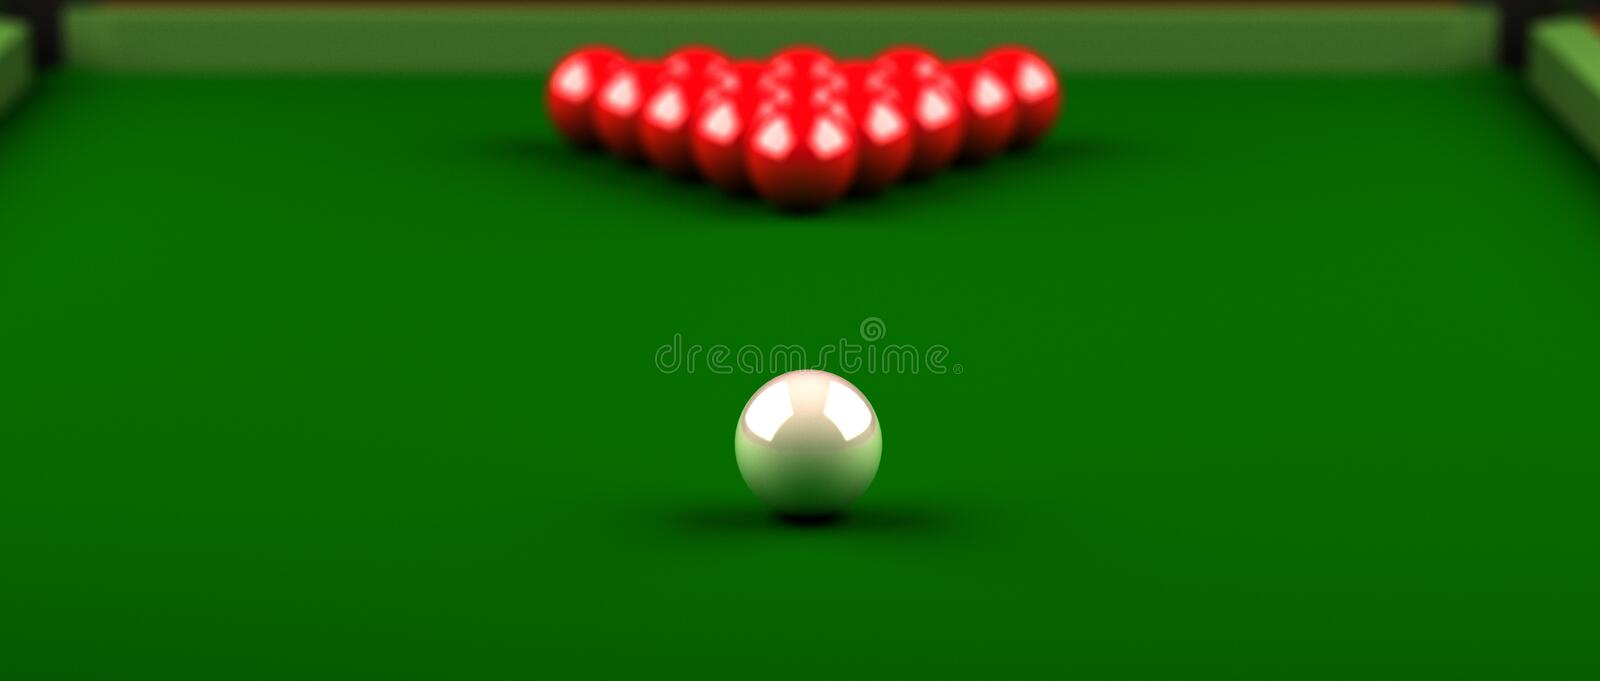 Snooker vector illustration